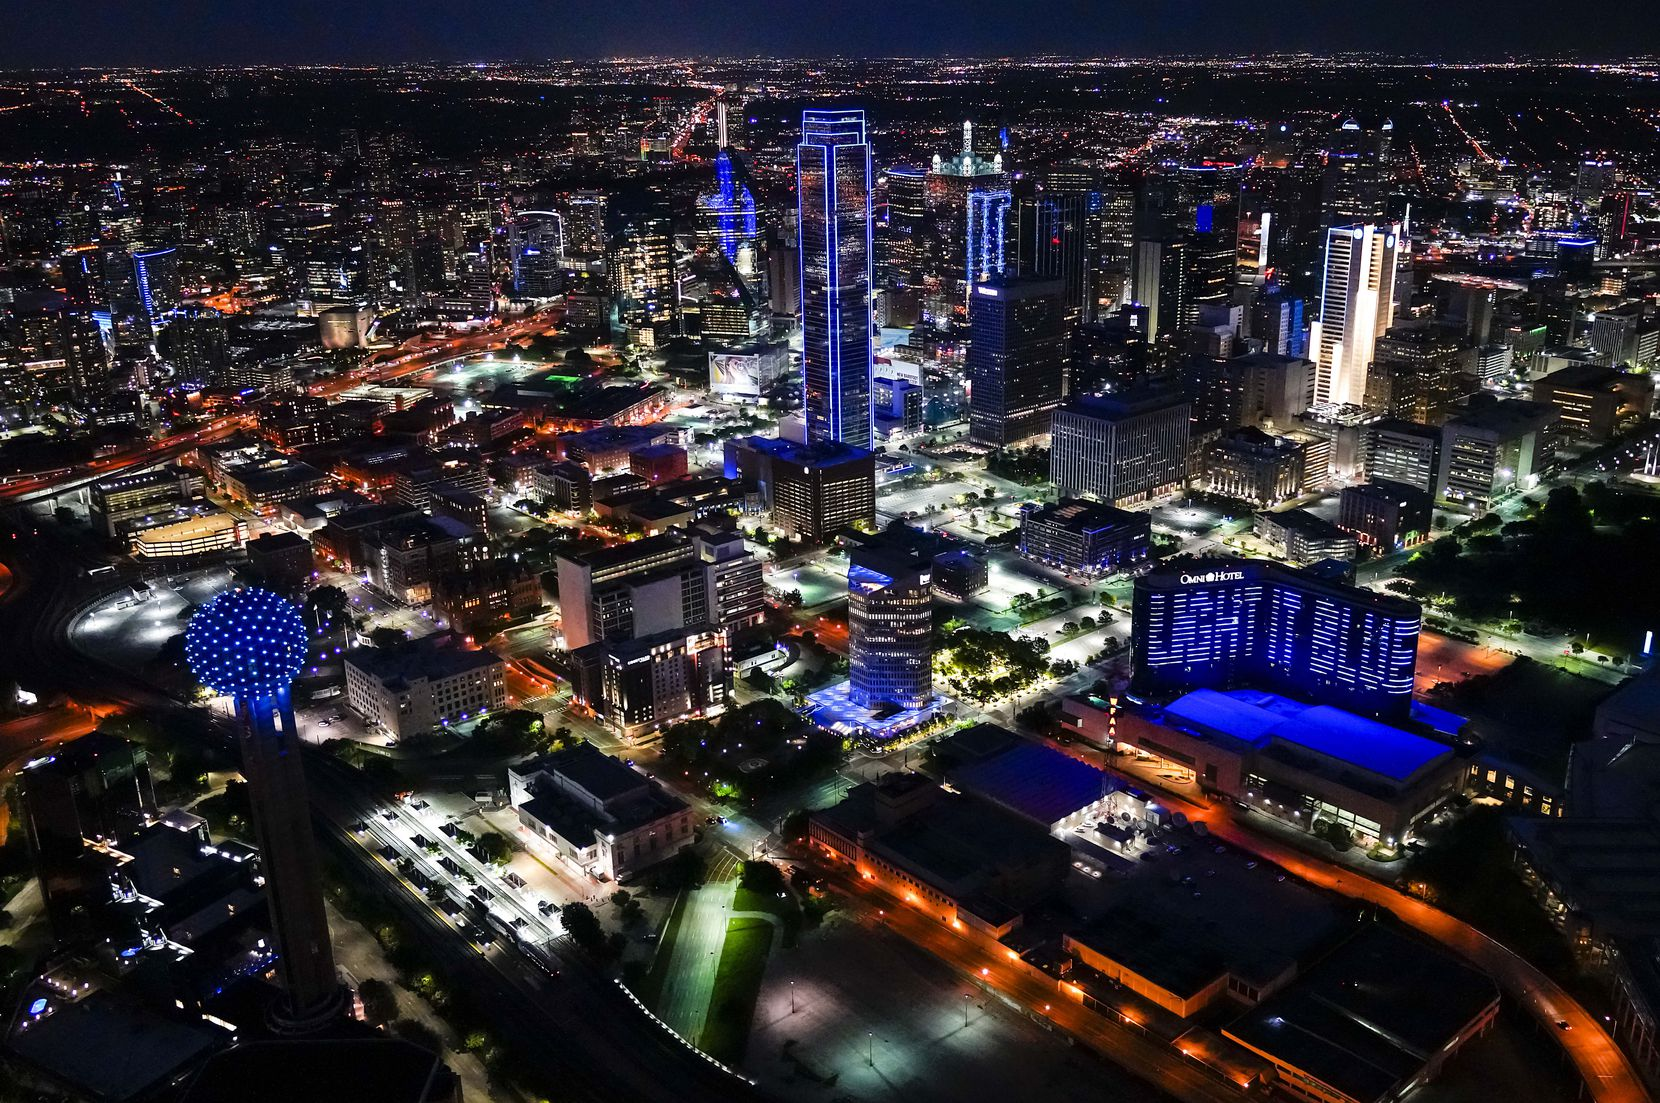 The downtown Dallas skyline was illuminated in blue as part of the nationwide #LightItBlue movement in early April. Major cities and buildings showed support in blue hue for those fighting COVID-19.